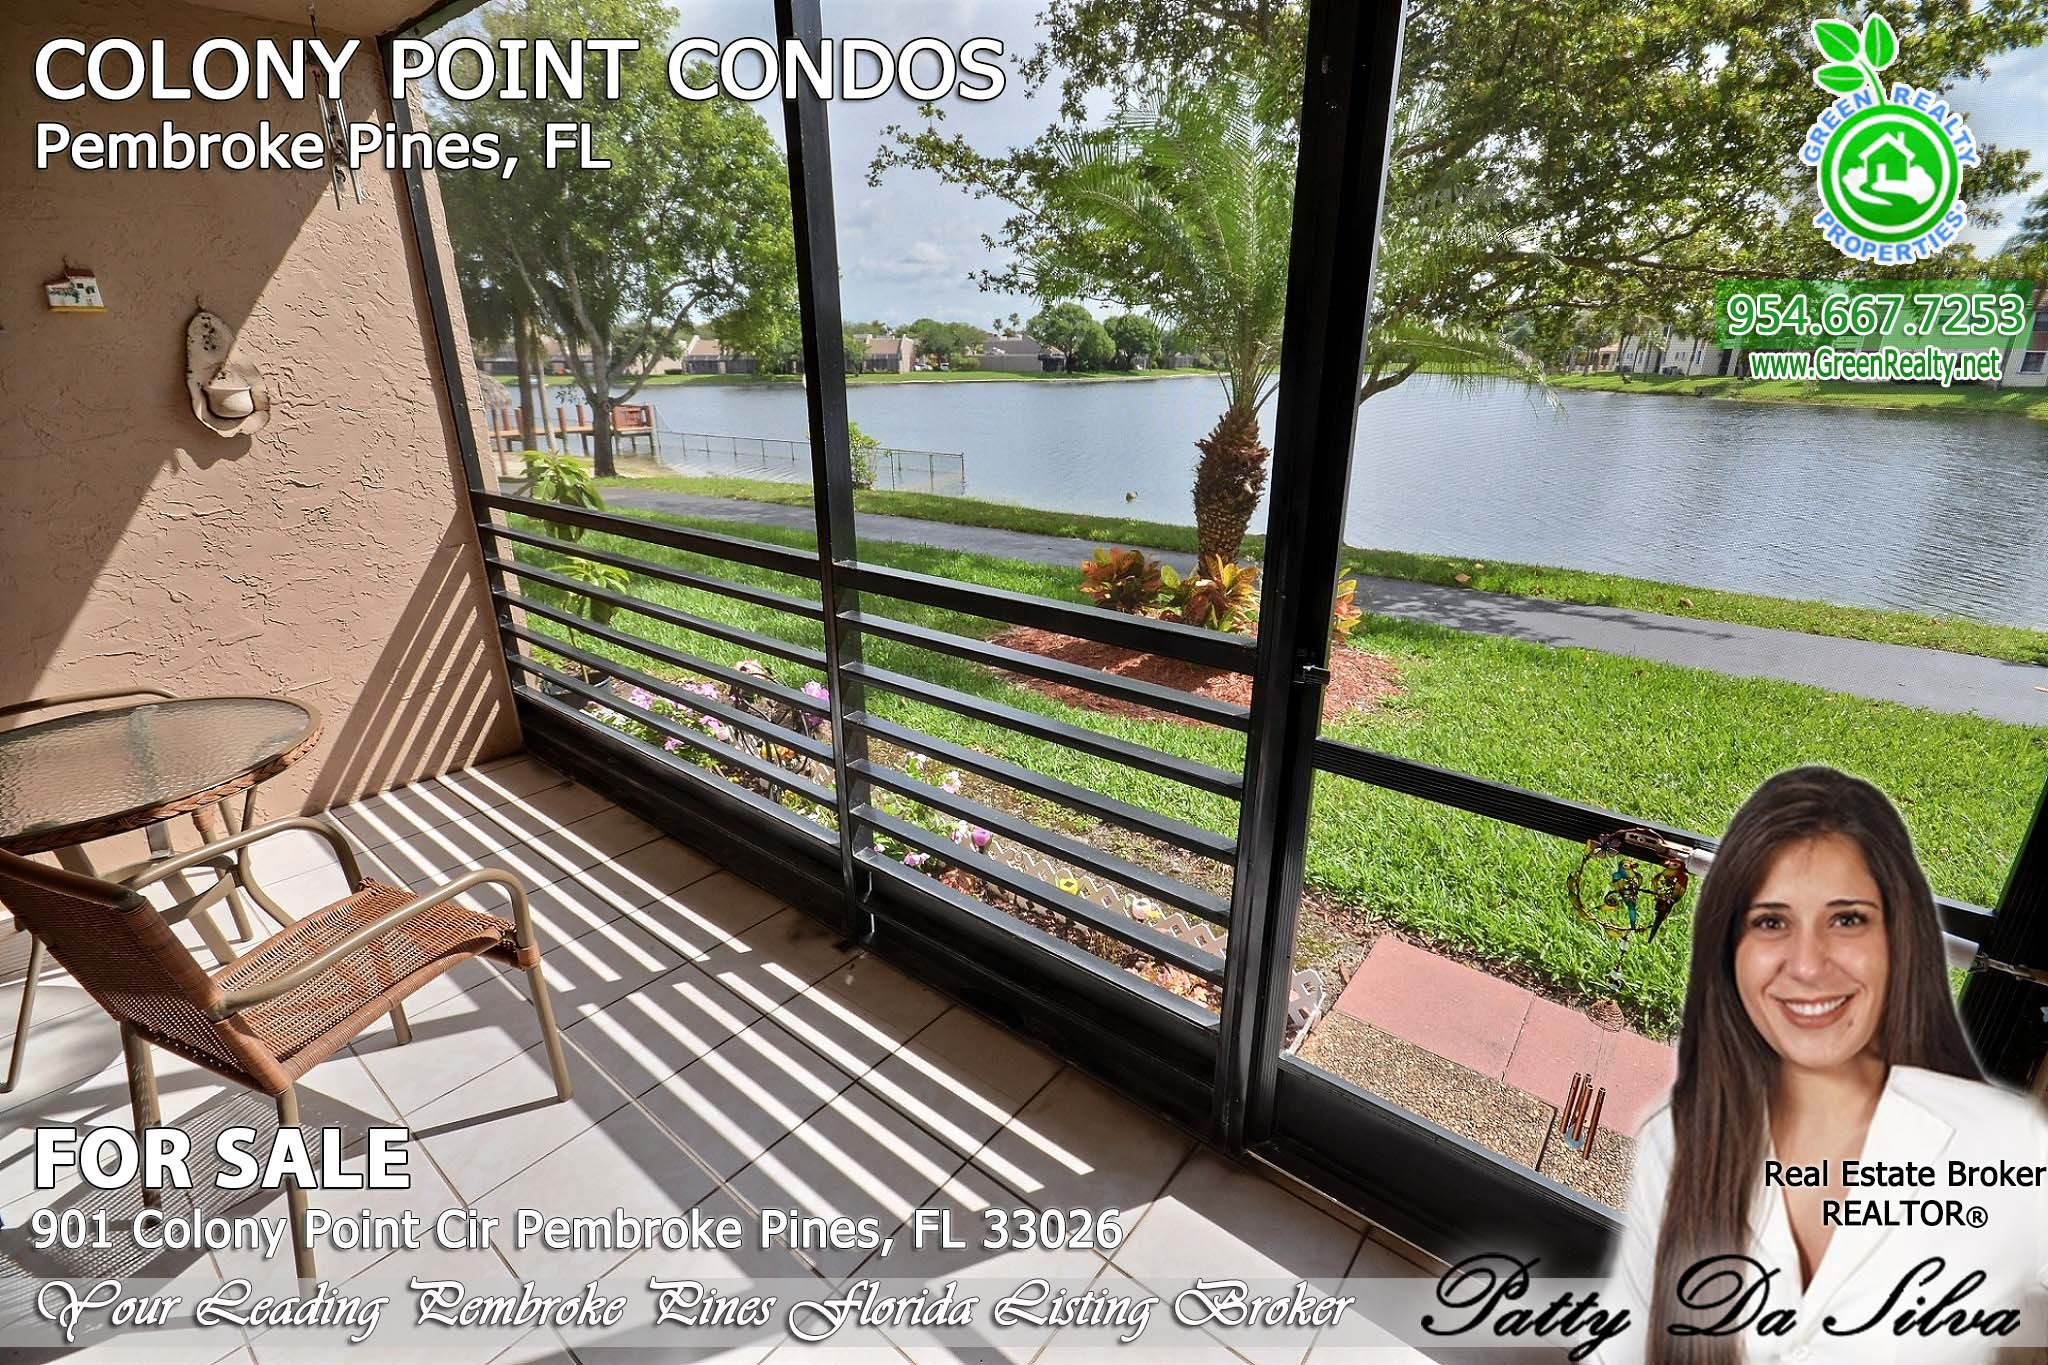 901 Colony Point Cir, Unit 112 - Pembroke Pines Homes For Sale (11)